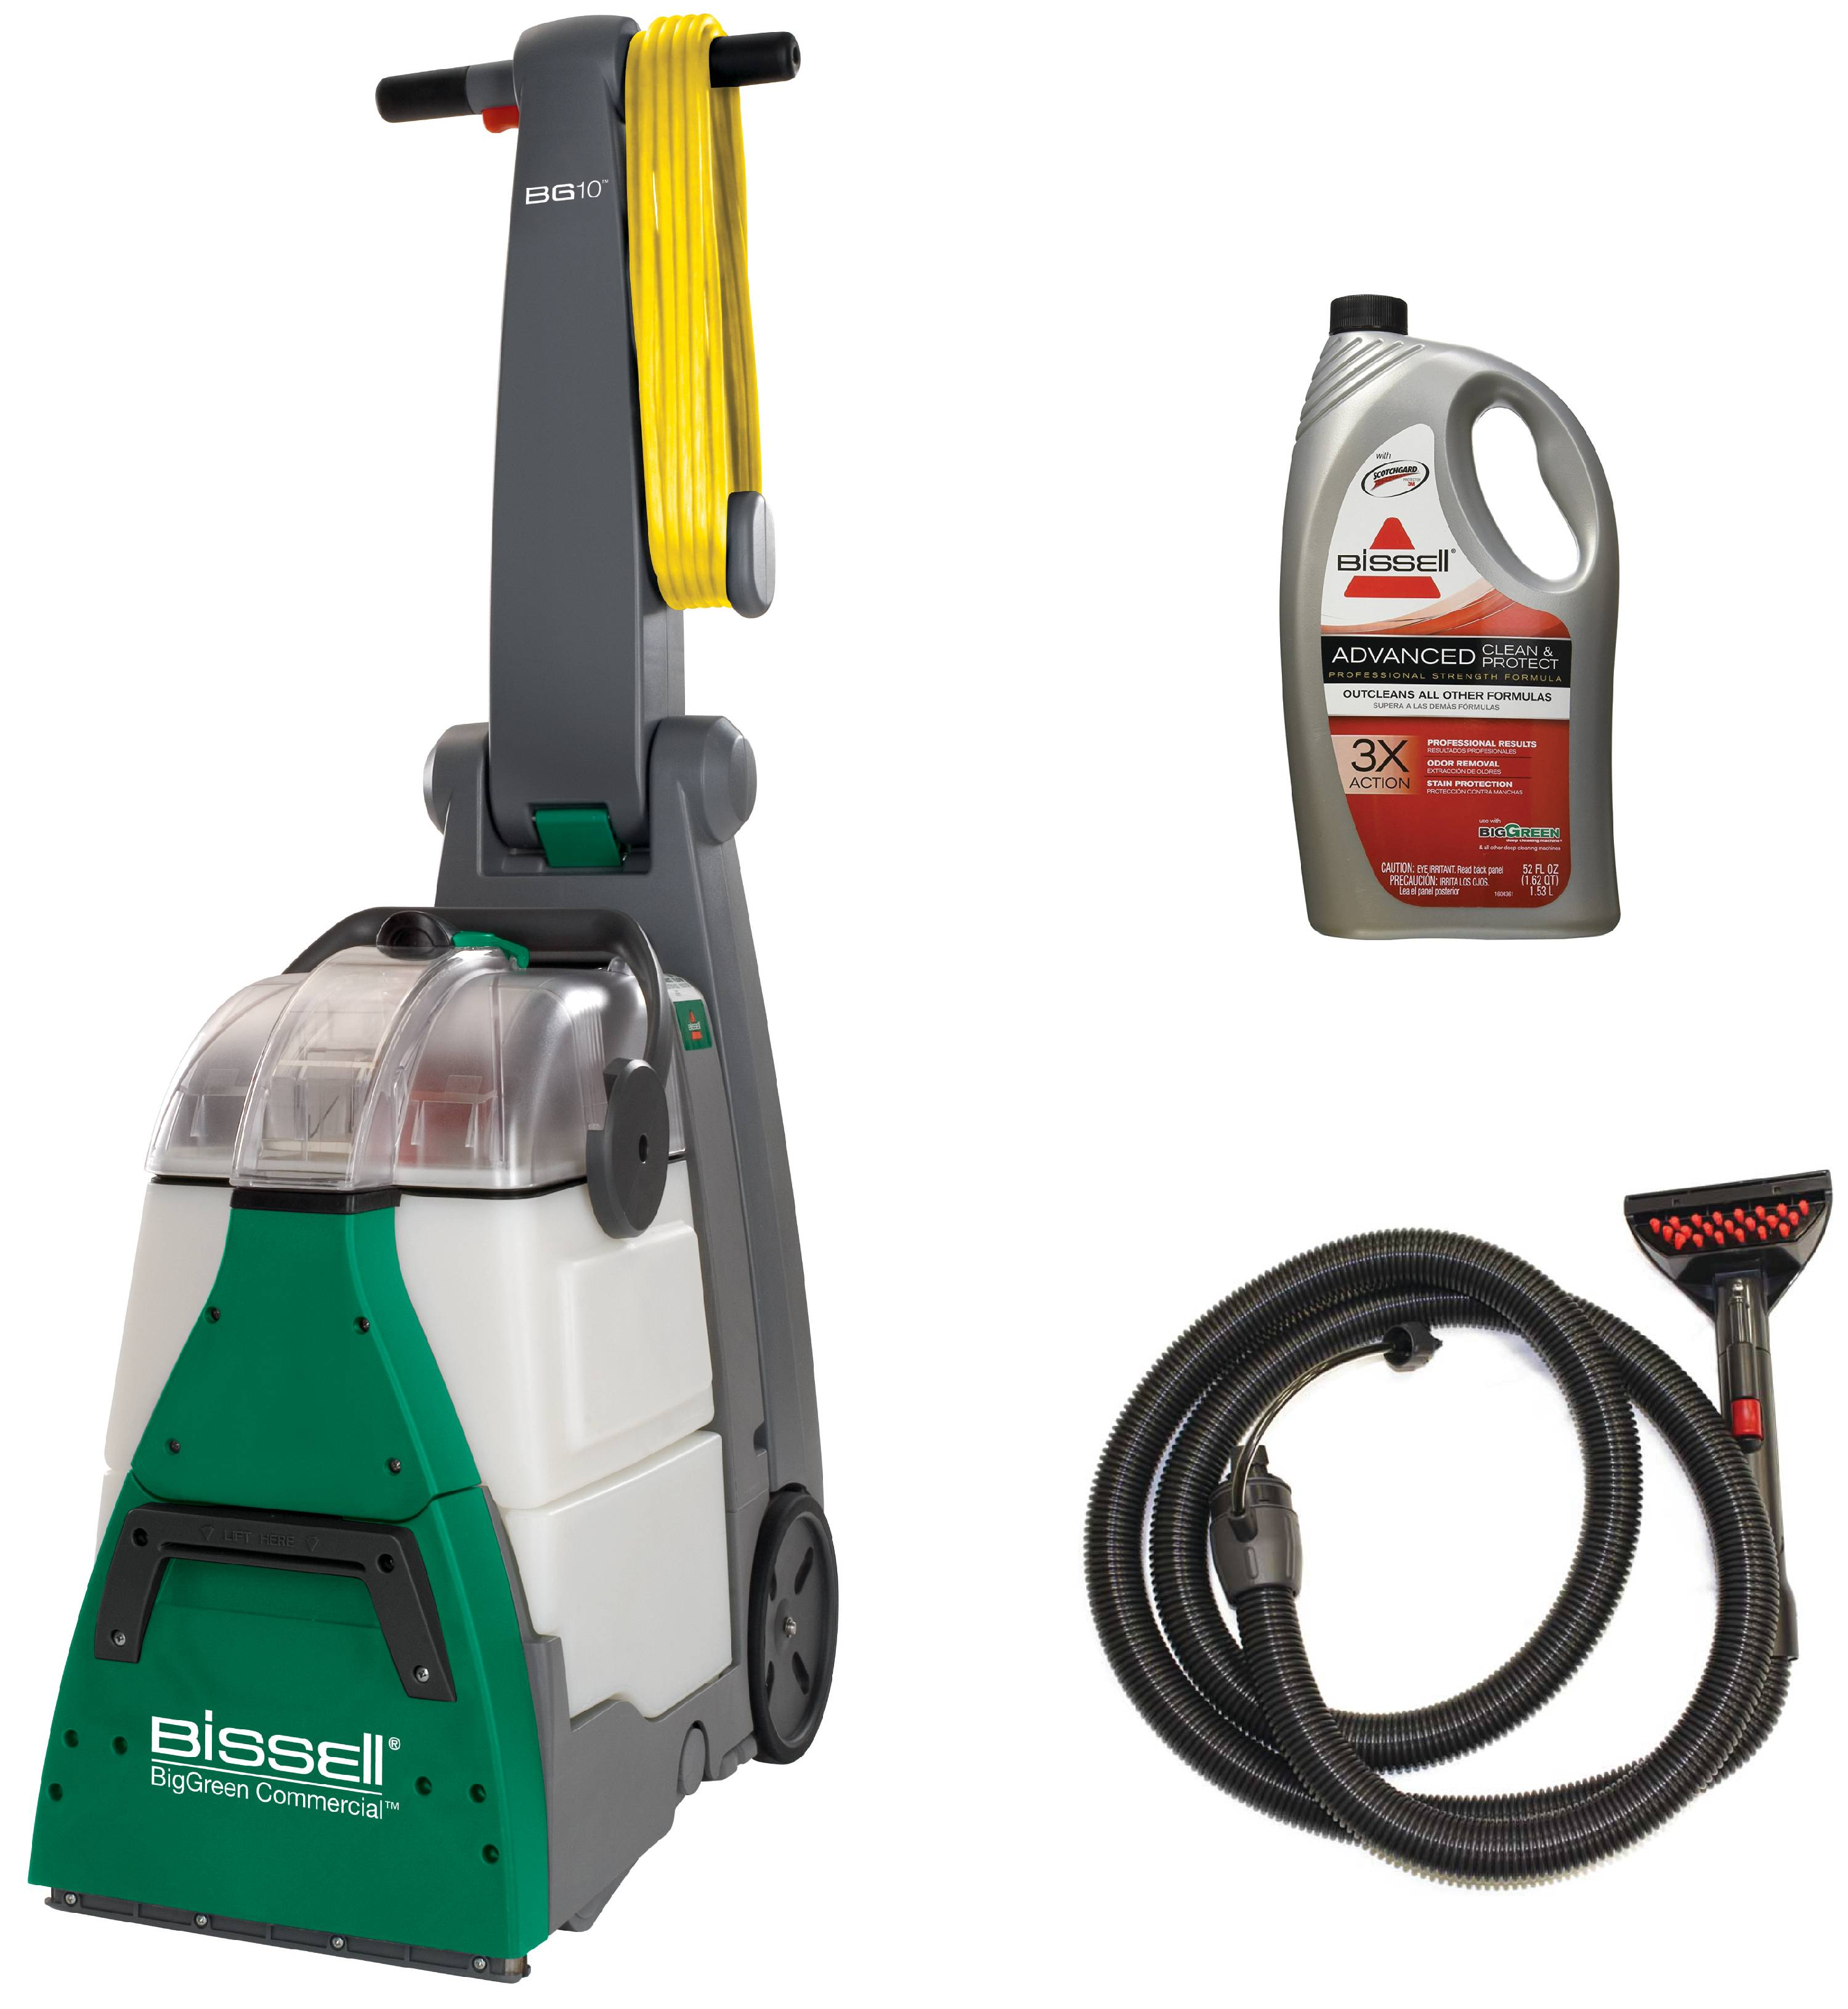 Bissell BG10 BigGreen Commercial Shampooer with Upholstery Tool Hose, Shampoo